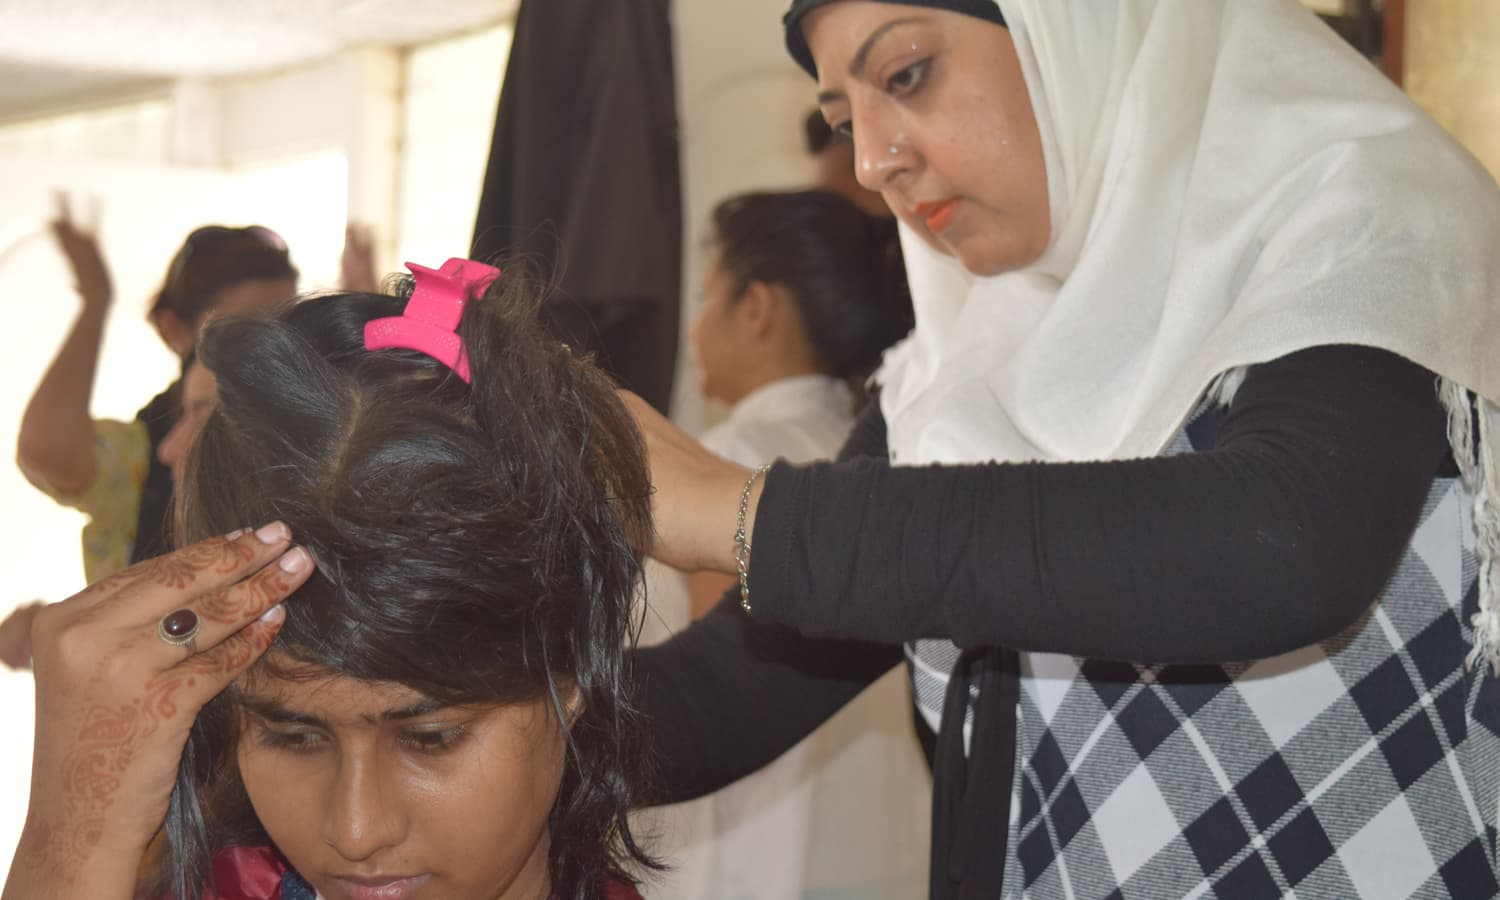 Saba Us Saba cuts off hair of a participant. — Photo by Yumna Rafi